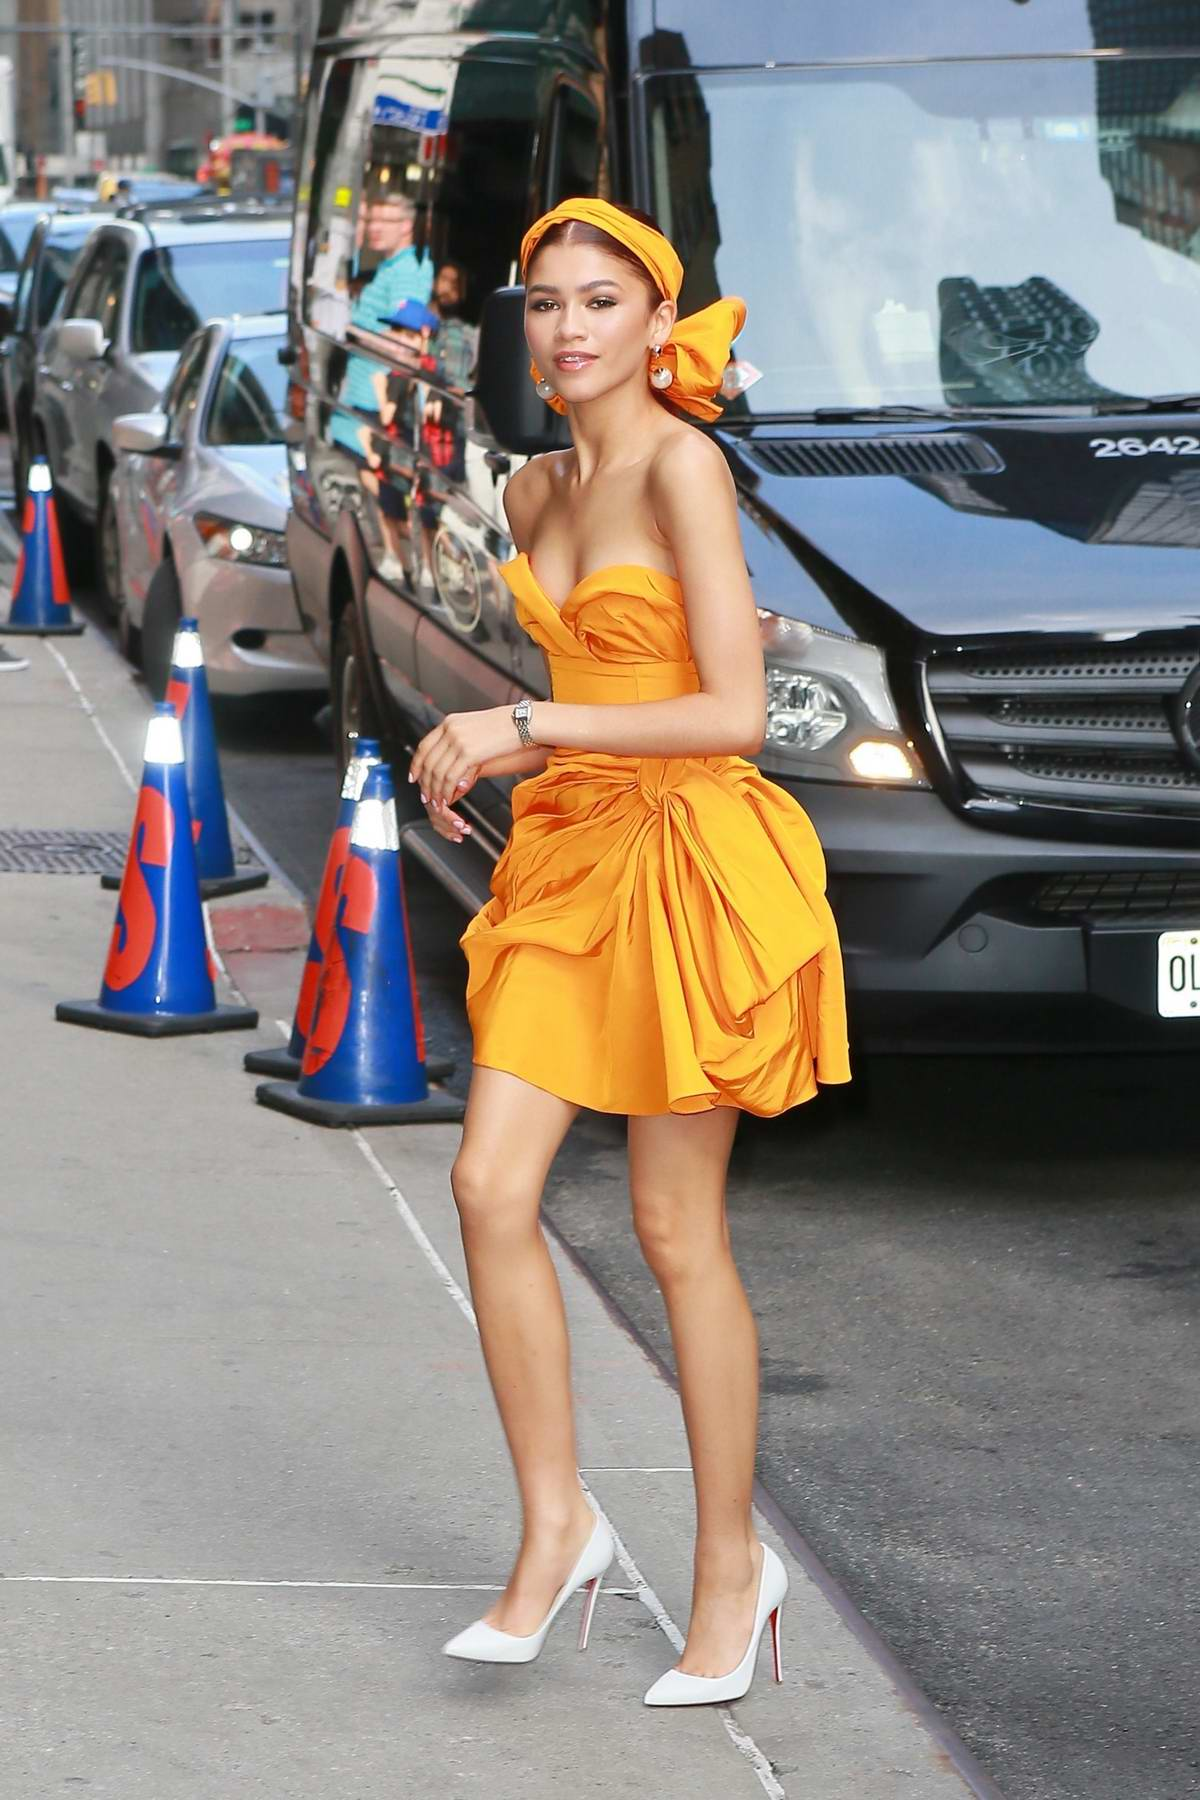 Zendaya looks vibrant in orange as she arrives for her appearance at 'The Late Show With Stephen Colbert' in New York City